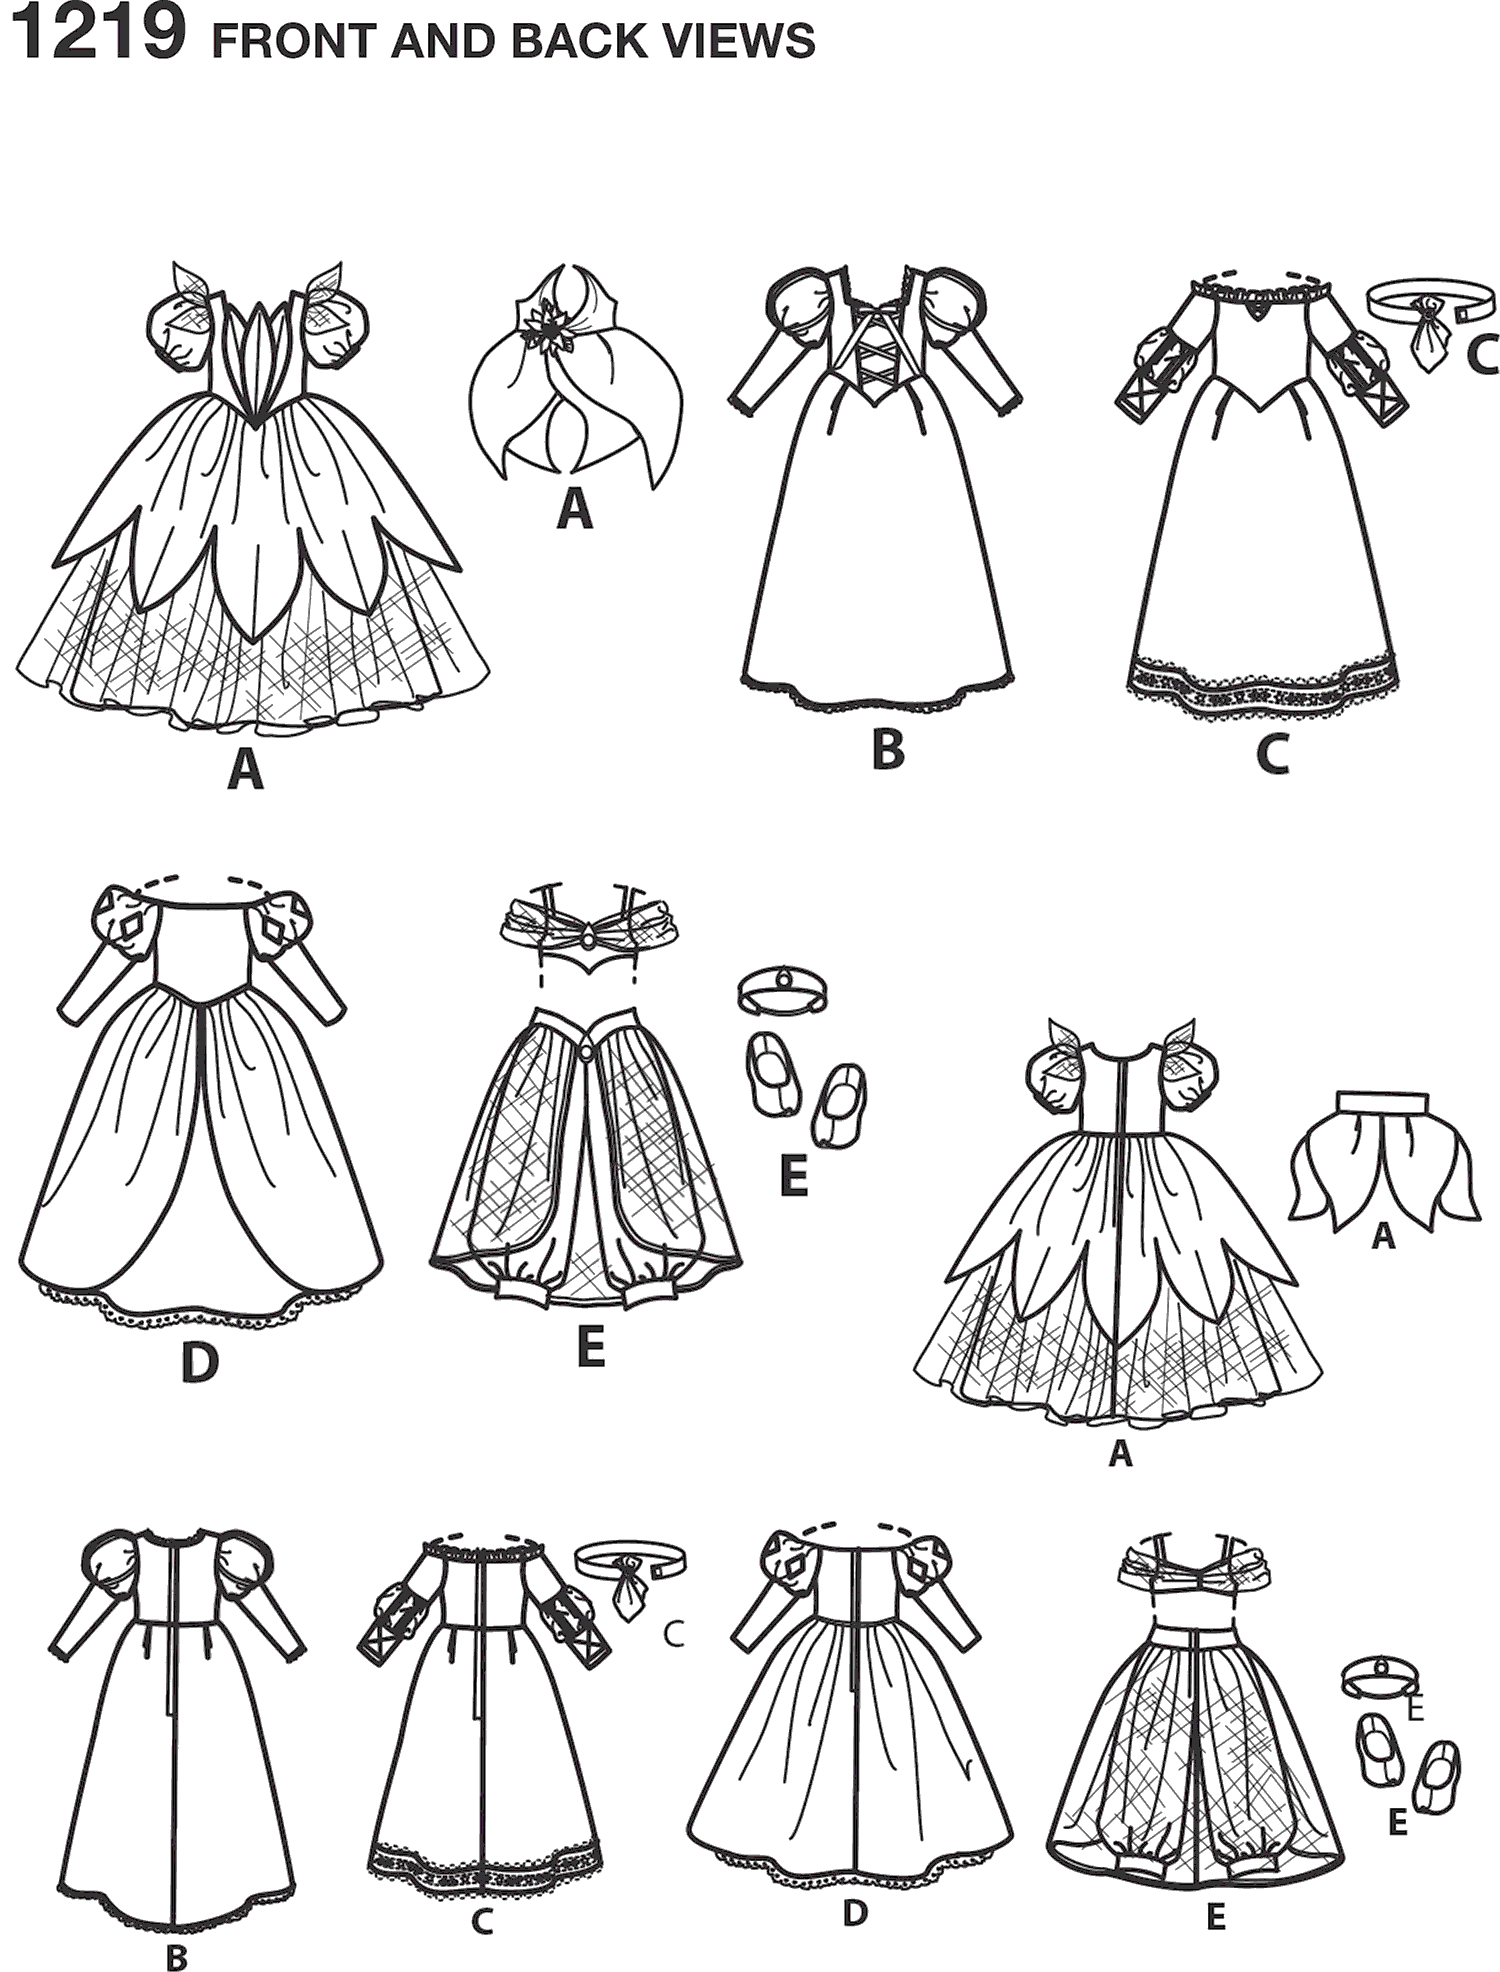 Simplicity Pattern 1219 Disney Princess 18 Doll Clothes Line Art From Patternsandplains.com